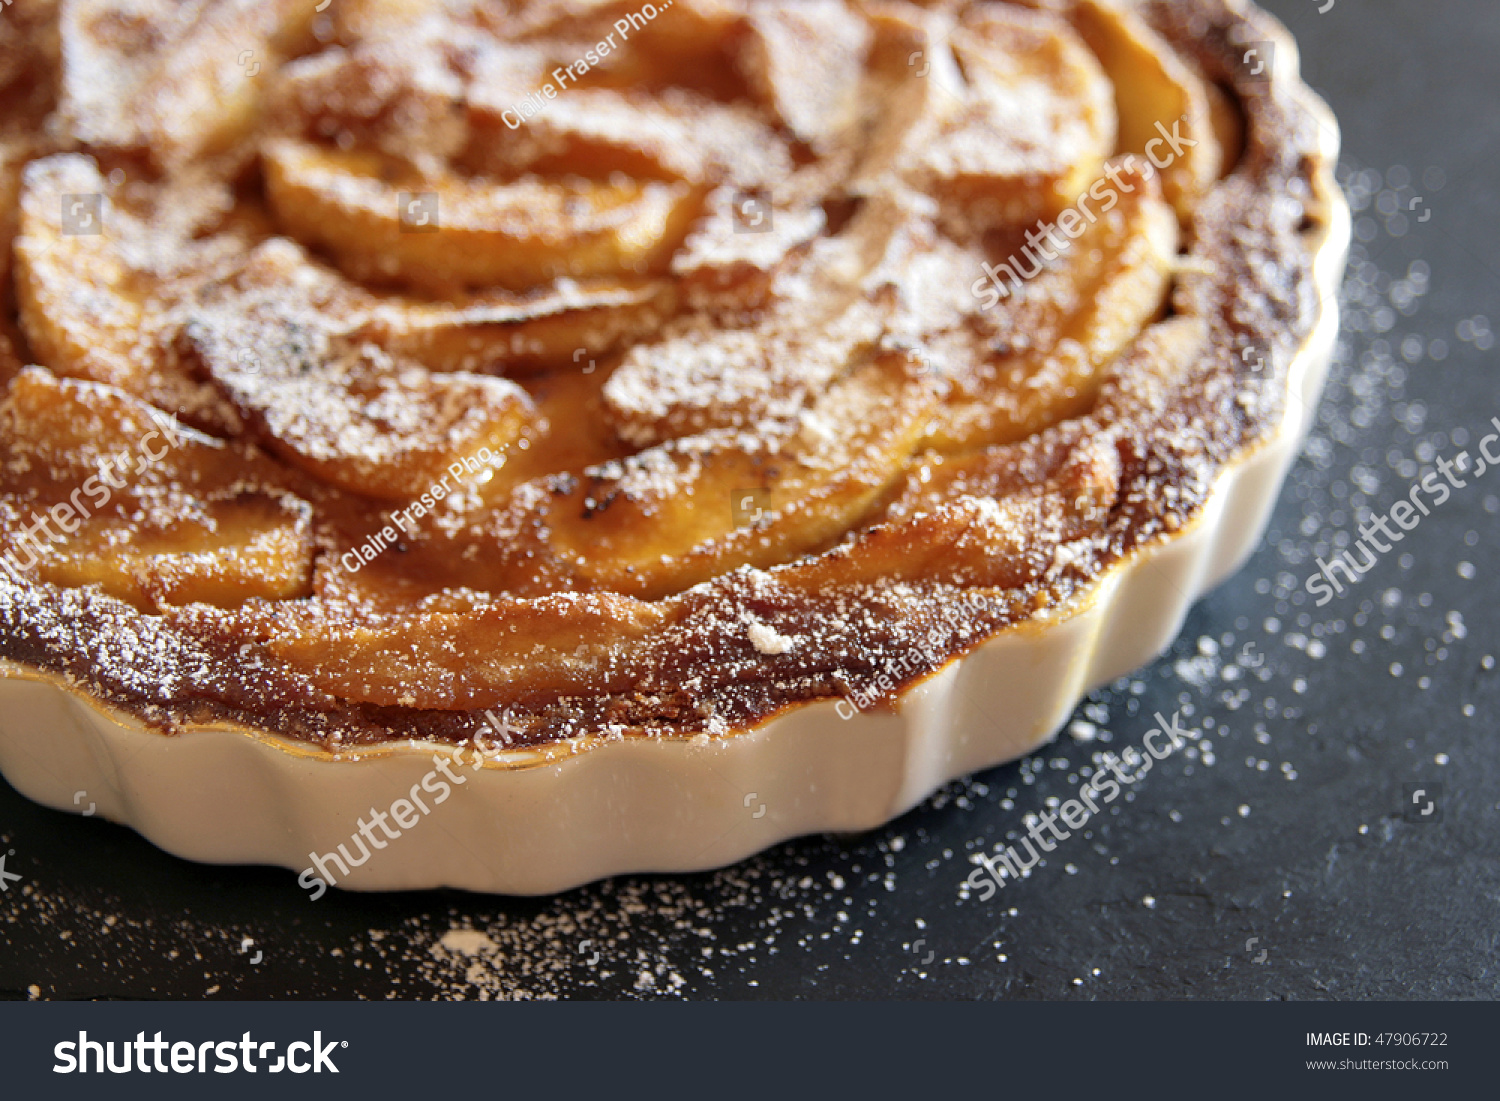 Caramelized Apple Tart Stock Photo 47906722 : Shutterstock